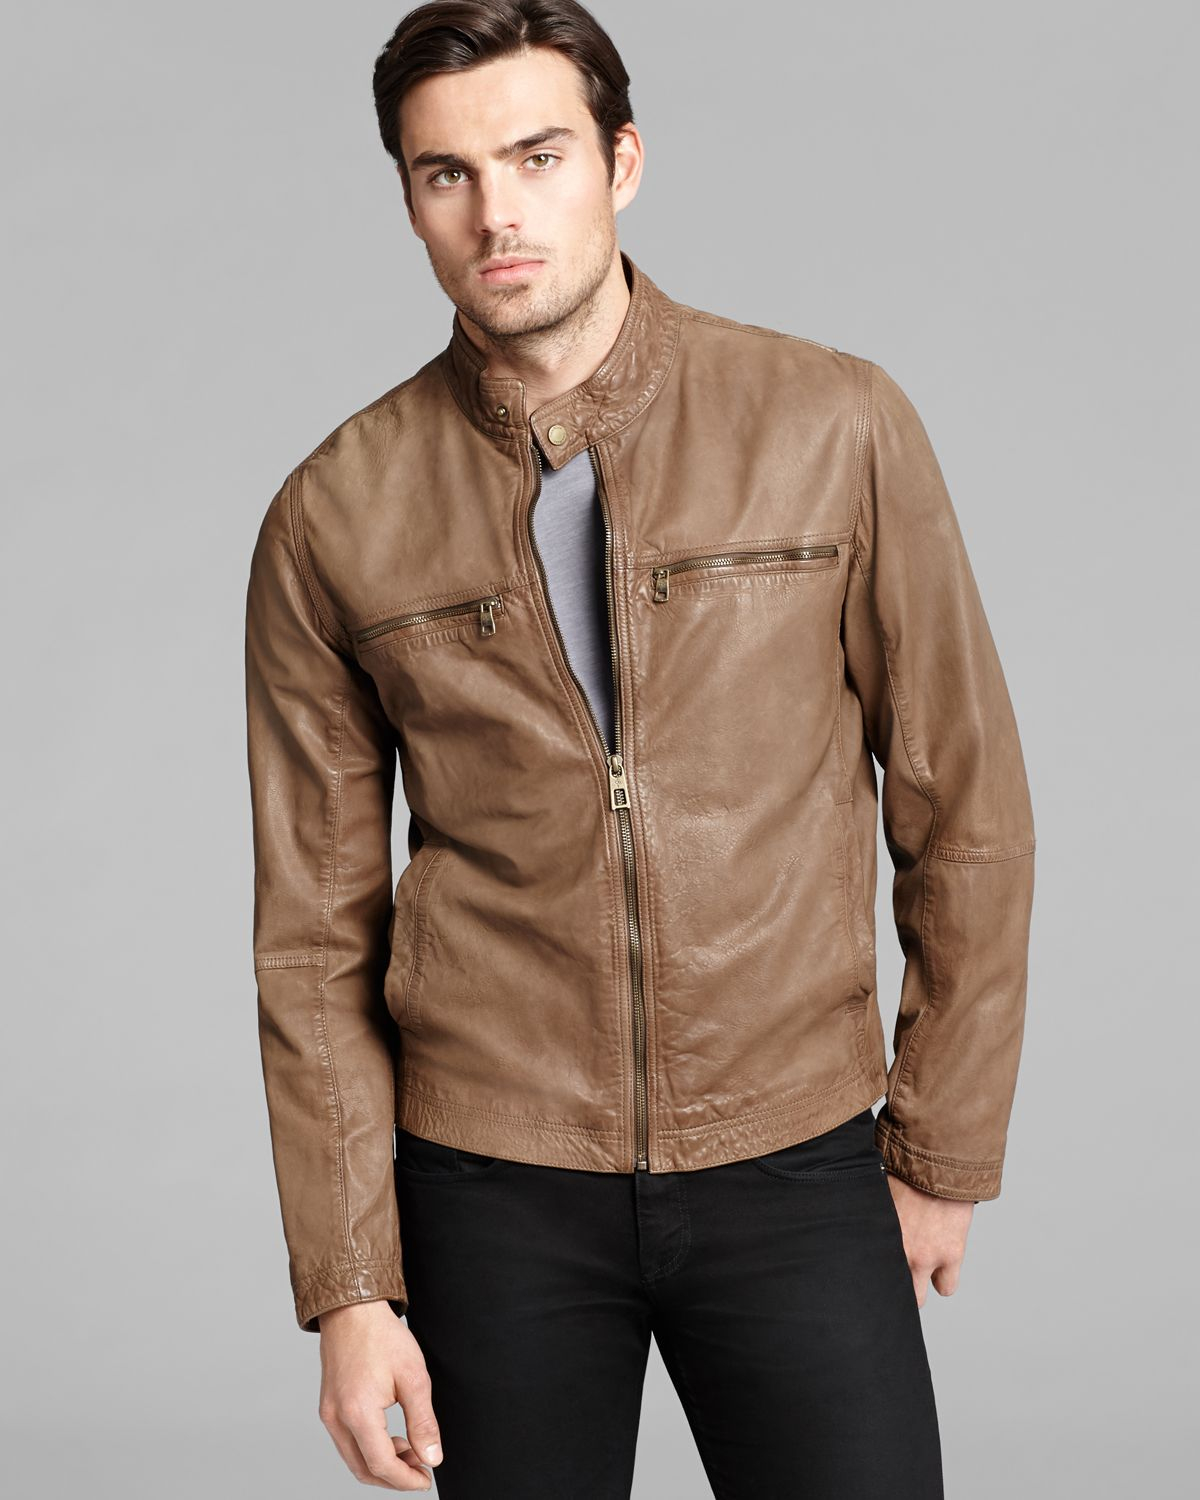 Cole haan Vintage Leather Moto Jacket in Brown for Men | Lyst